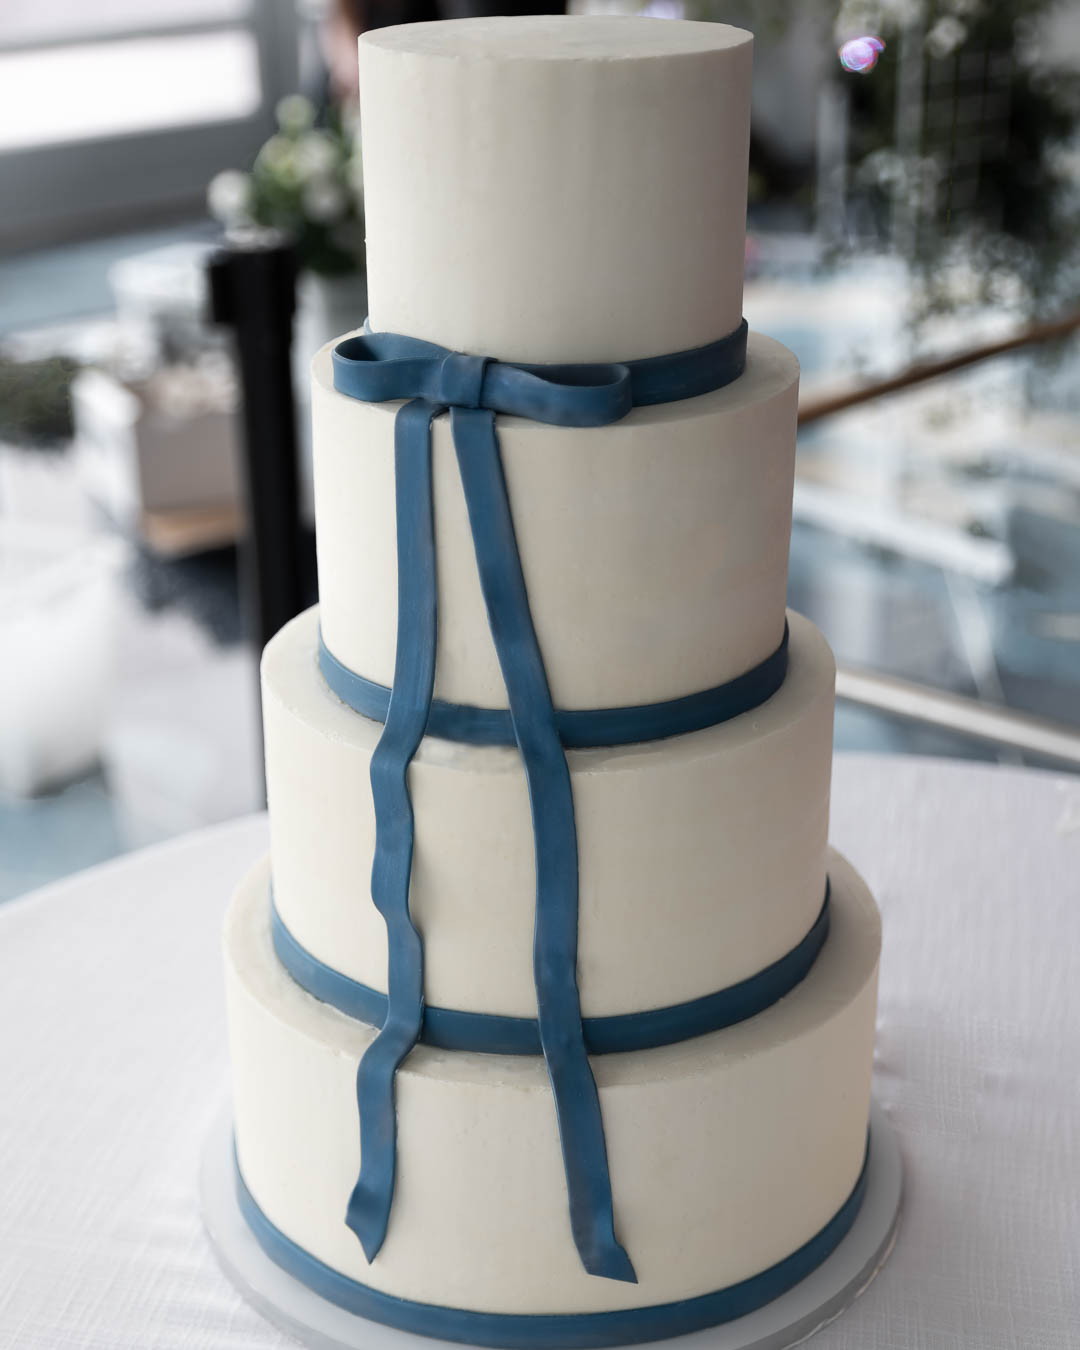 Classic buttercream cake with fondant ribbon that can be custom colored